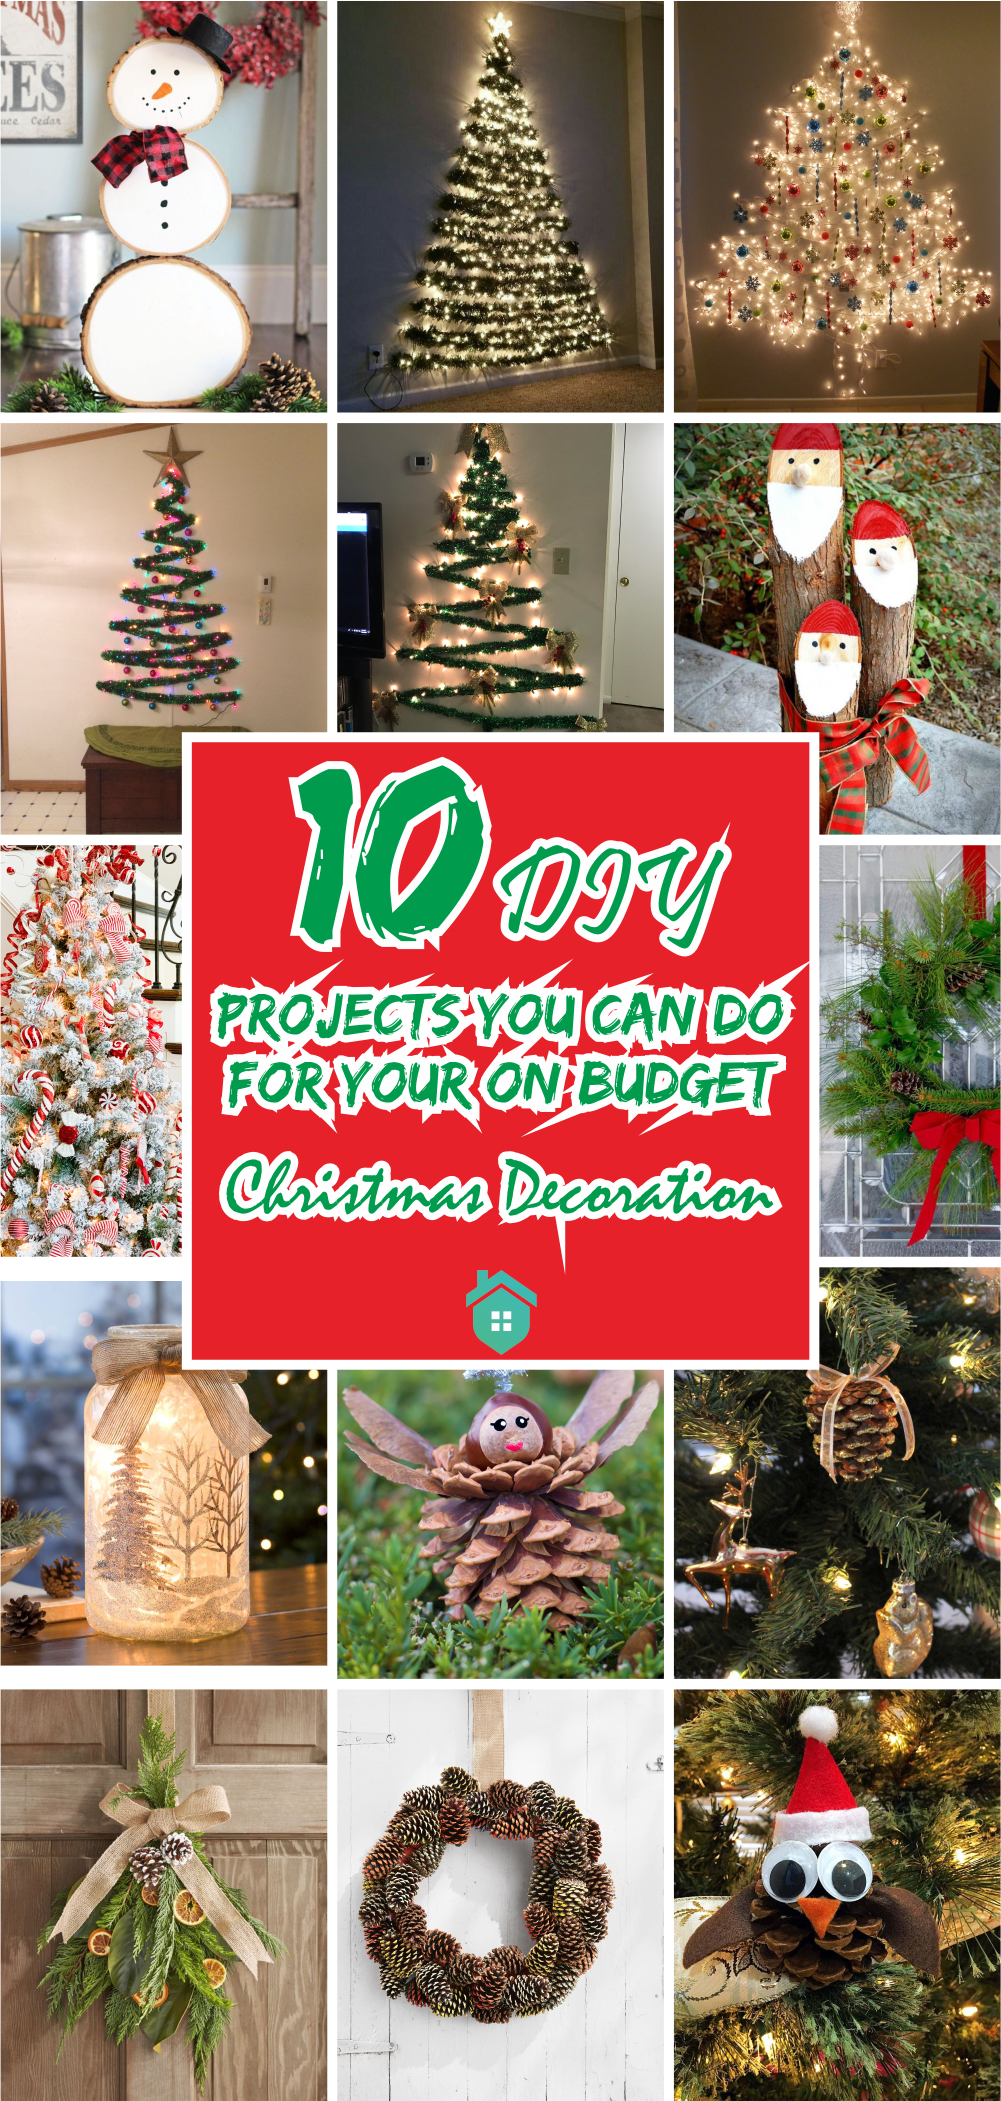 10 diy projects you can do for your on-budget christmas decoration5